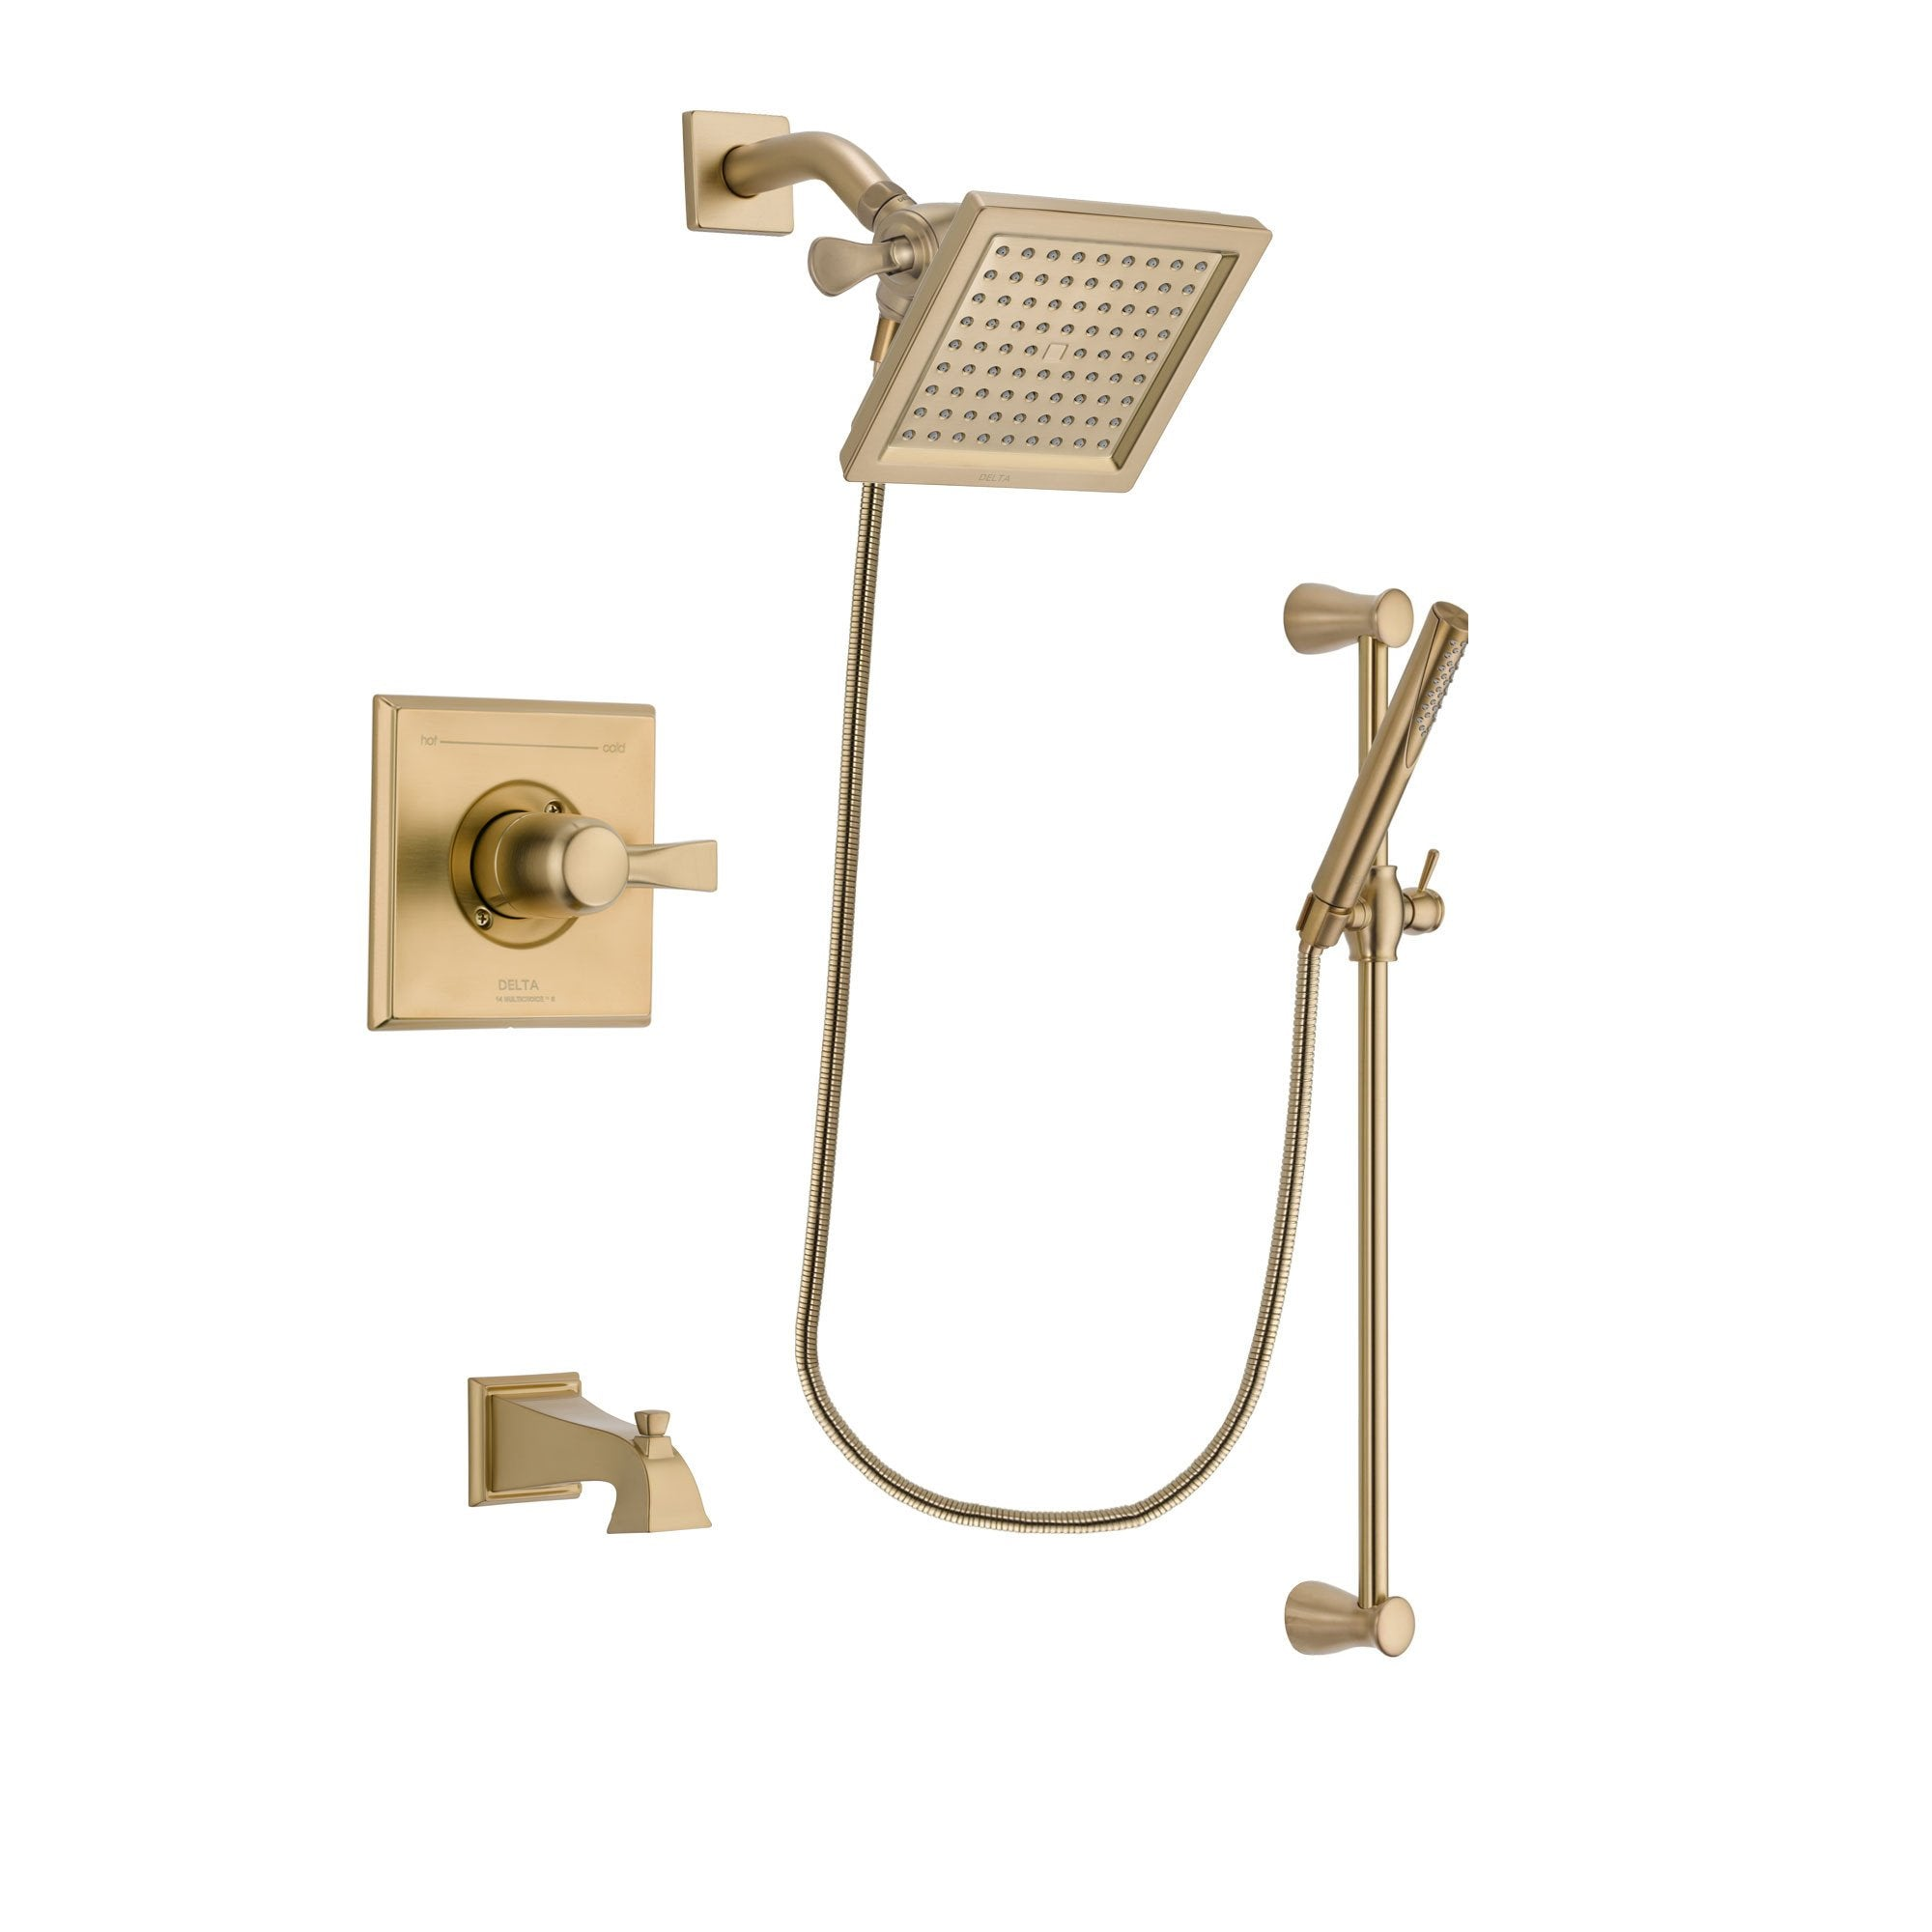 Delta Dryden Champagne Bronze Finish Tub And Shower Faucet System Package  With 6.5 Inch Square